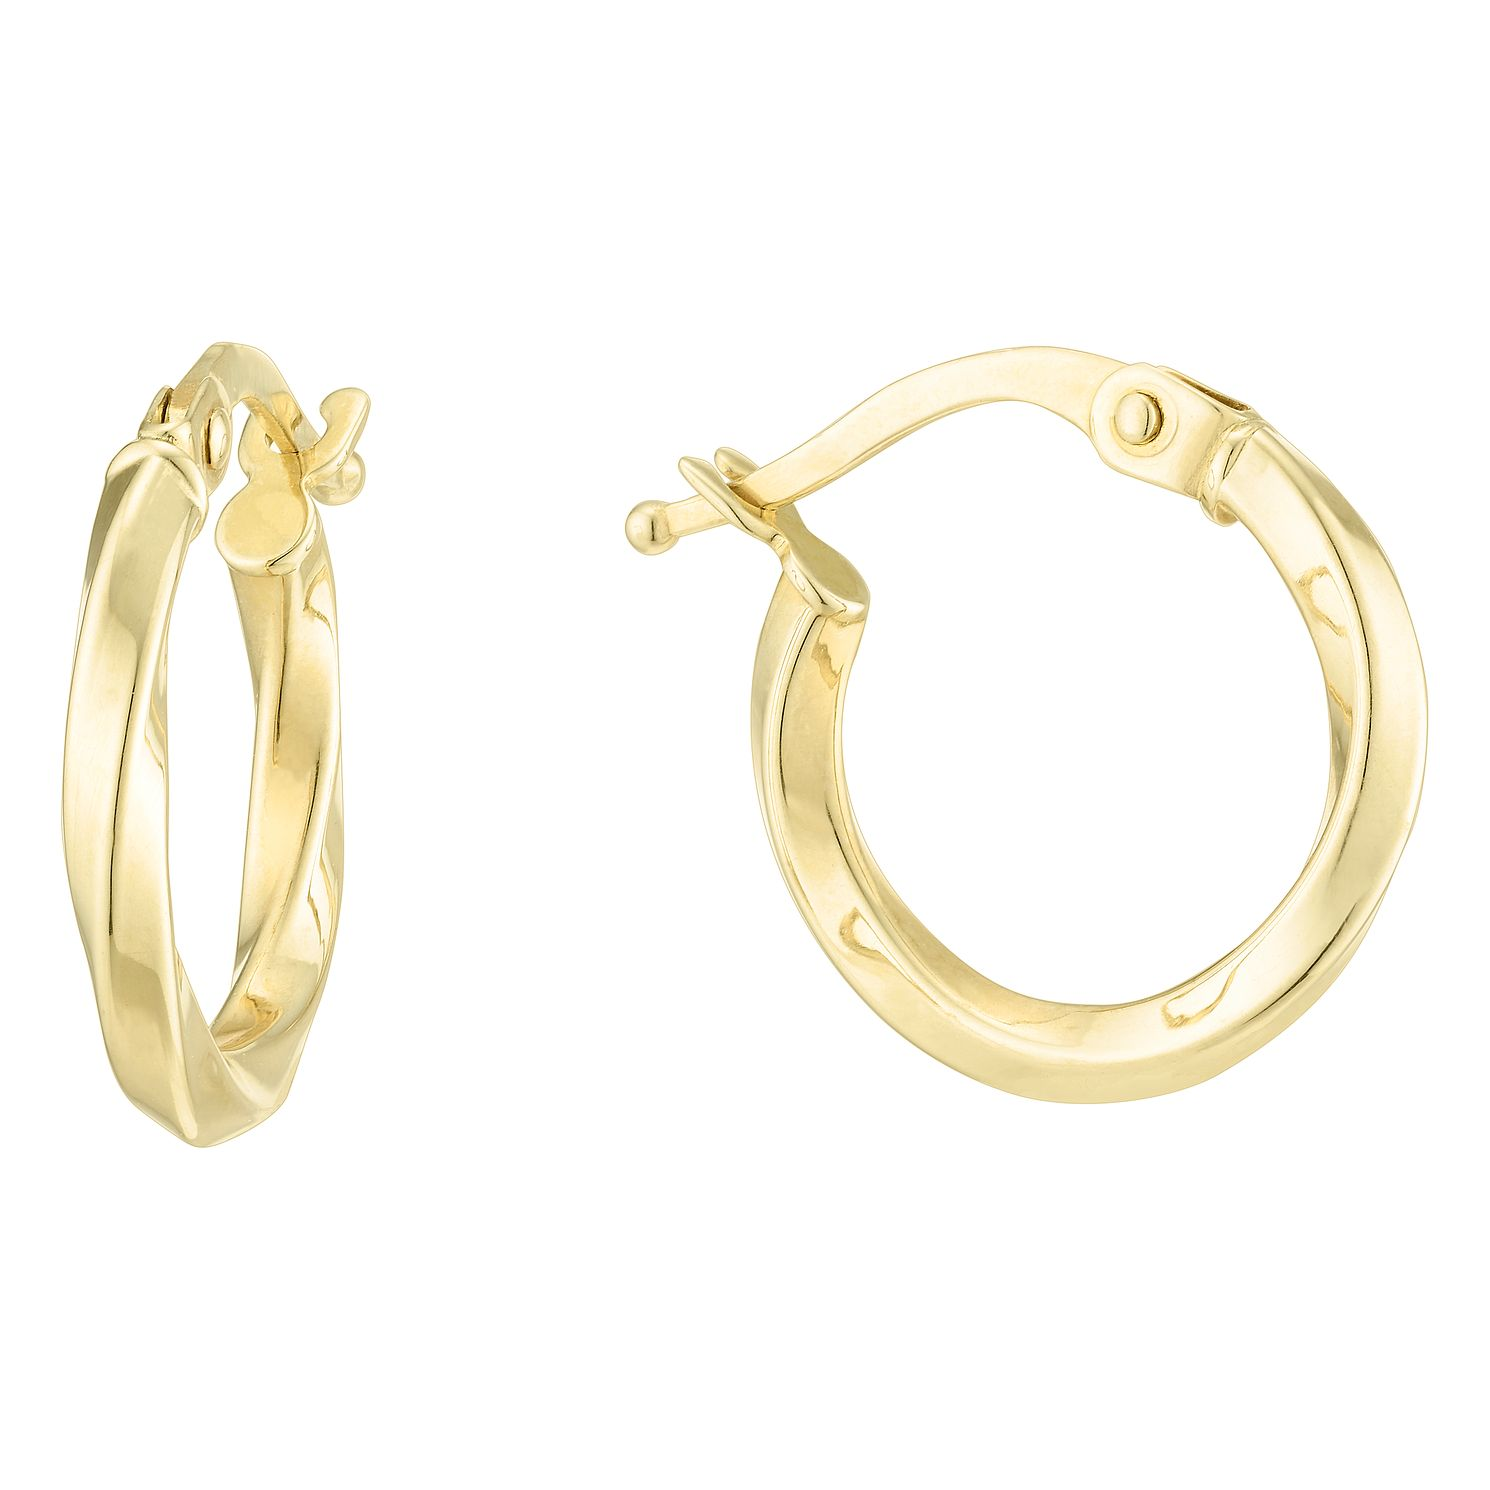 9ct Yellow Gold Twist 10mm Hoop Earrings - Product number 6382541